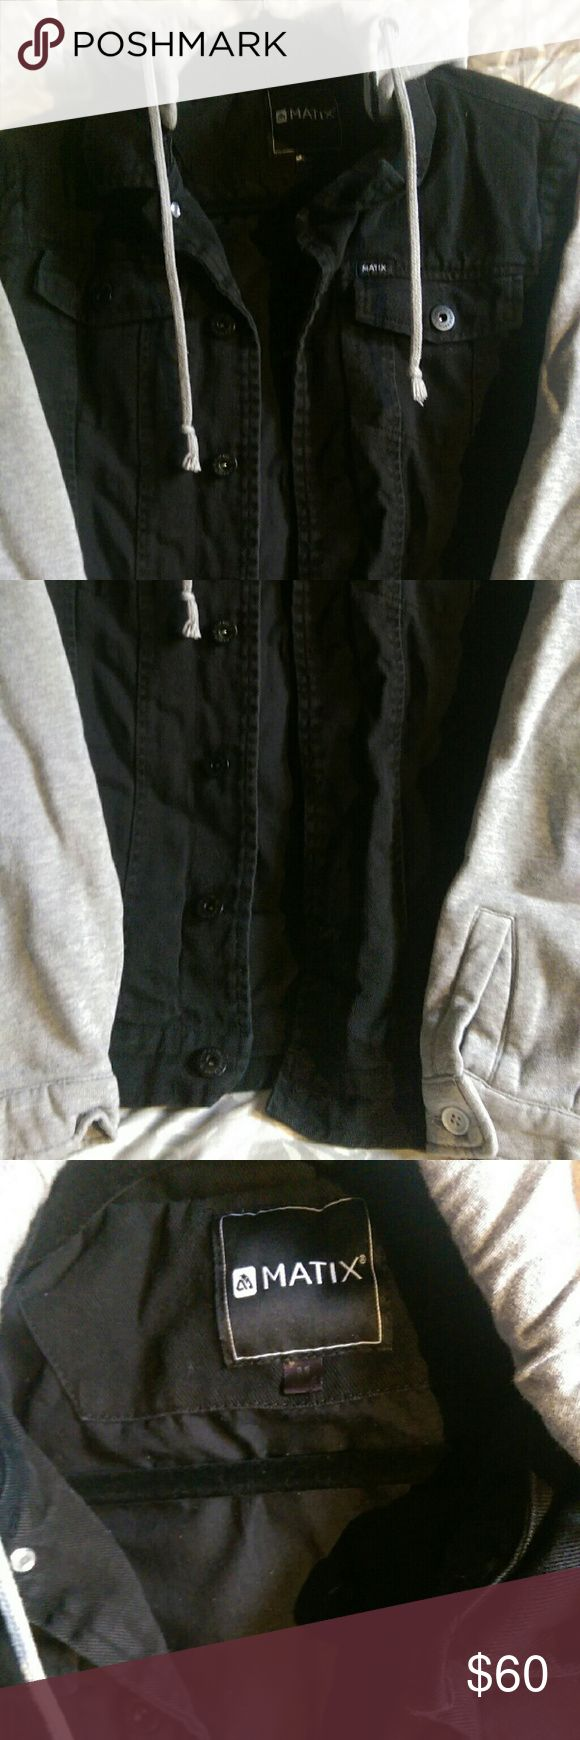 Matix Jean Jacket With Hoodie Worn a bit, good condition. Black Jean Cloth, with Cotton Sleeves and Hood. Keeps you warm and perfect for spring and late fall. Matix Clothing Company Jackets & Coats Jean Jackets